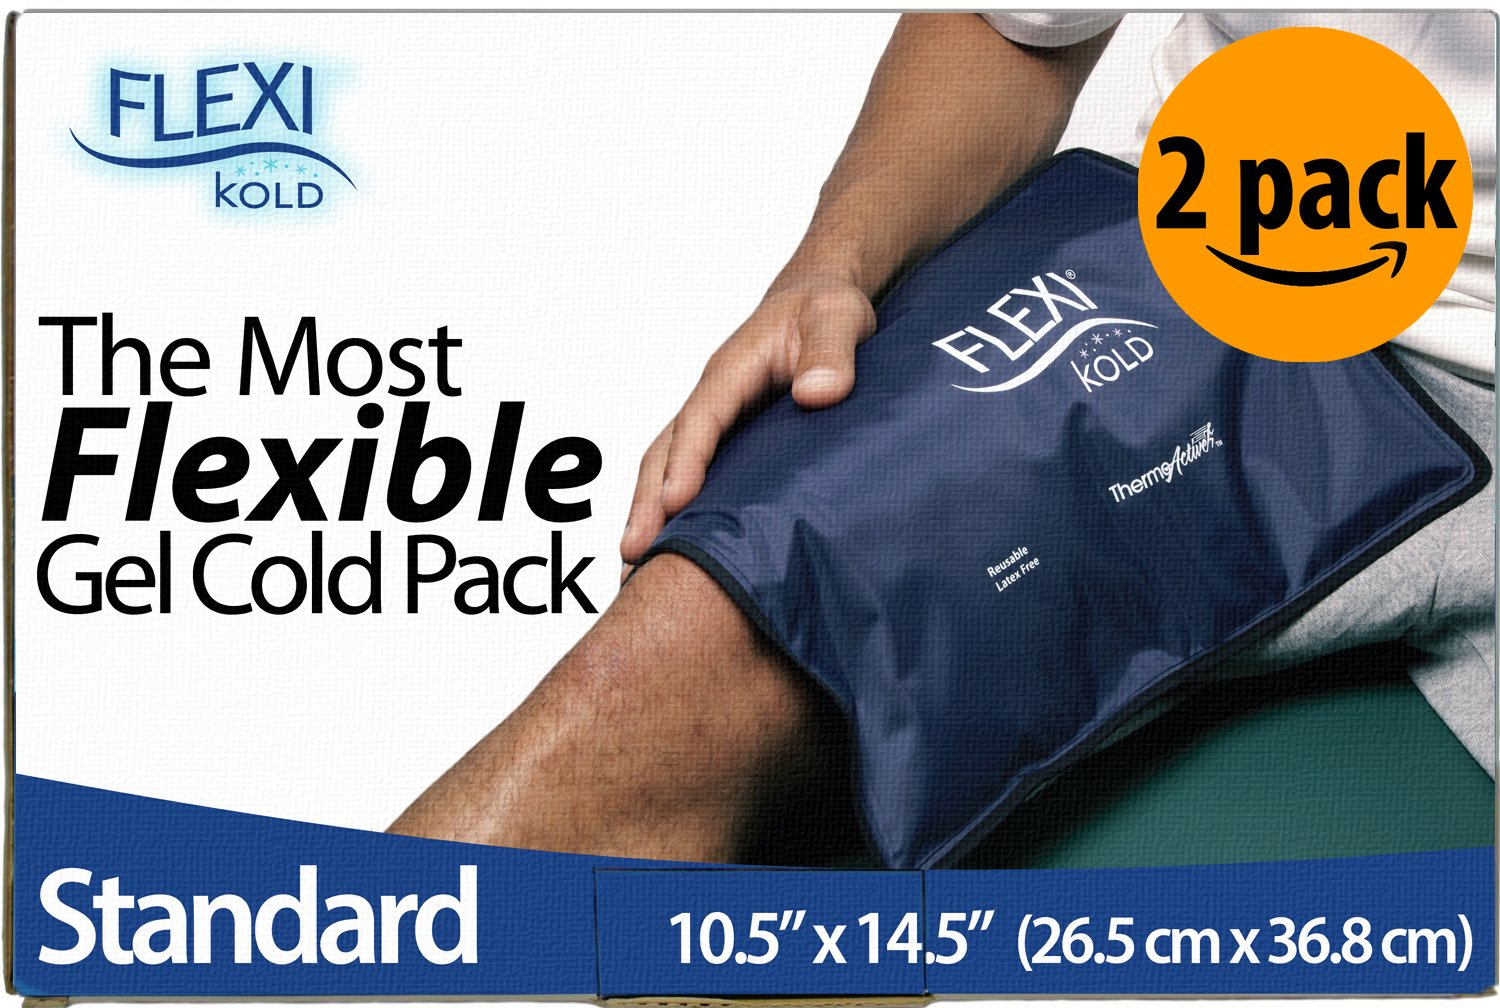 FlexiKold Gel Ice Pack (Standard Large: 10.5'' x 14.5'') - Two (2) Reusable Cold Therapy Packs (for Pain and Injuries to Knee, Shoulder, Foot, Back, Ankle, Neck, Hip, Wrist) - 6300-COLD